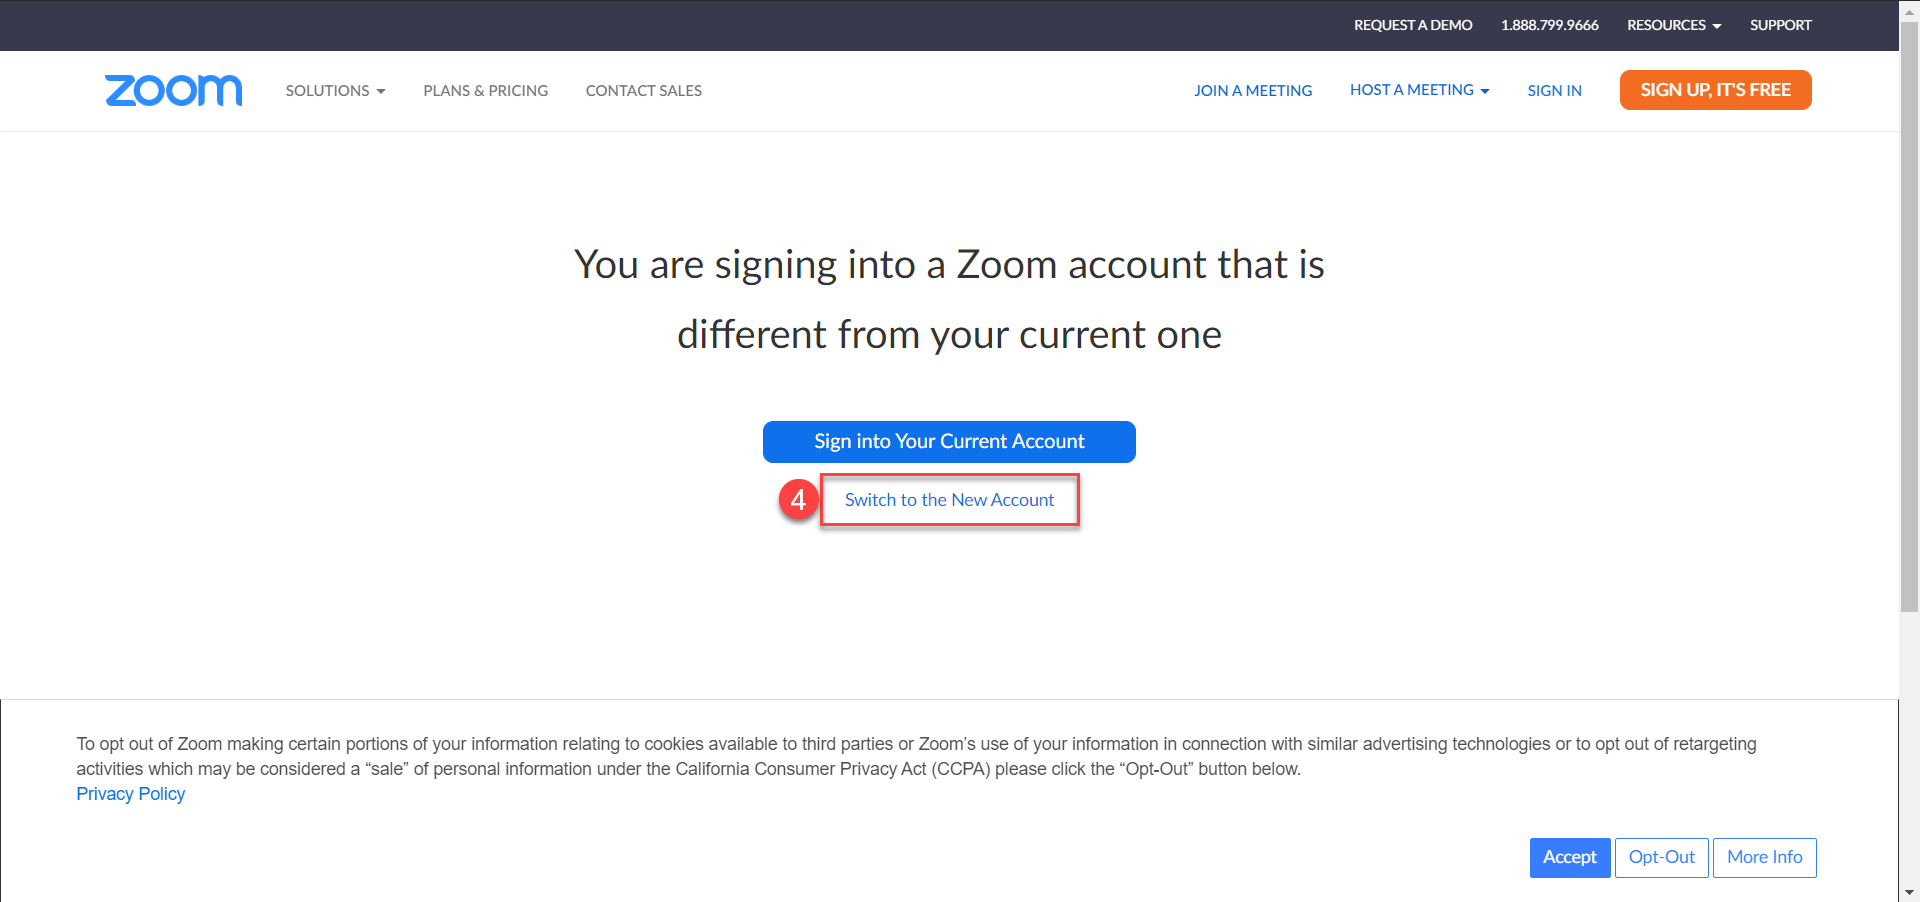 Signing in to a different Zoom account message with option to Switch to the New Account.